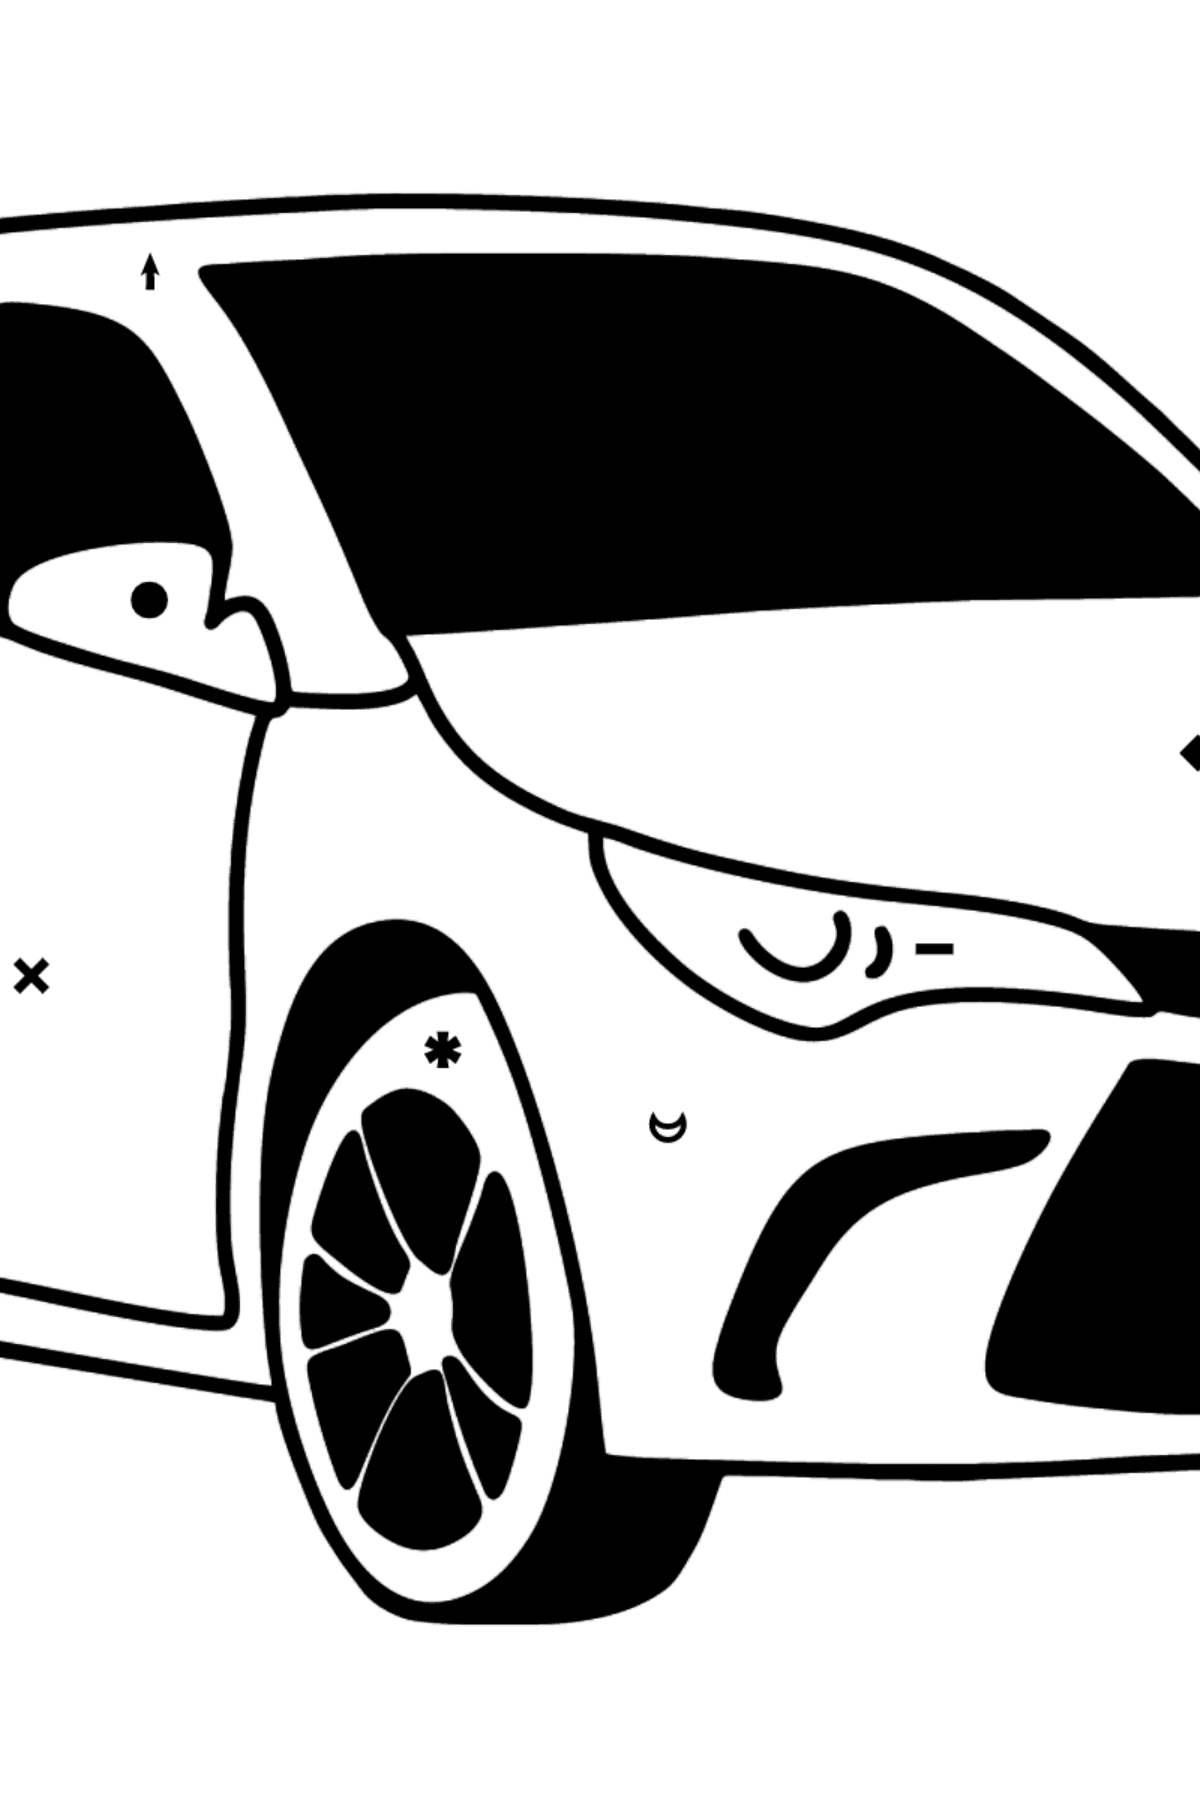 Toyota Camry coloring page - Coloring by Symbols for Kids